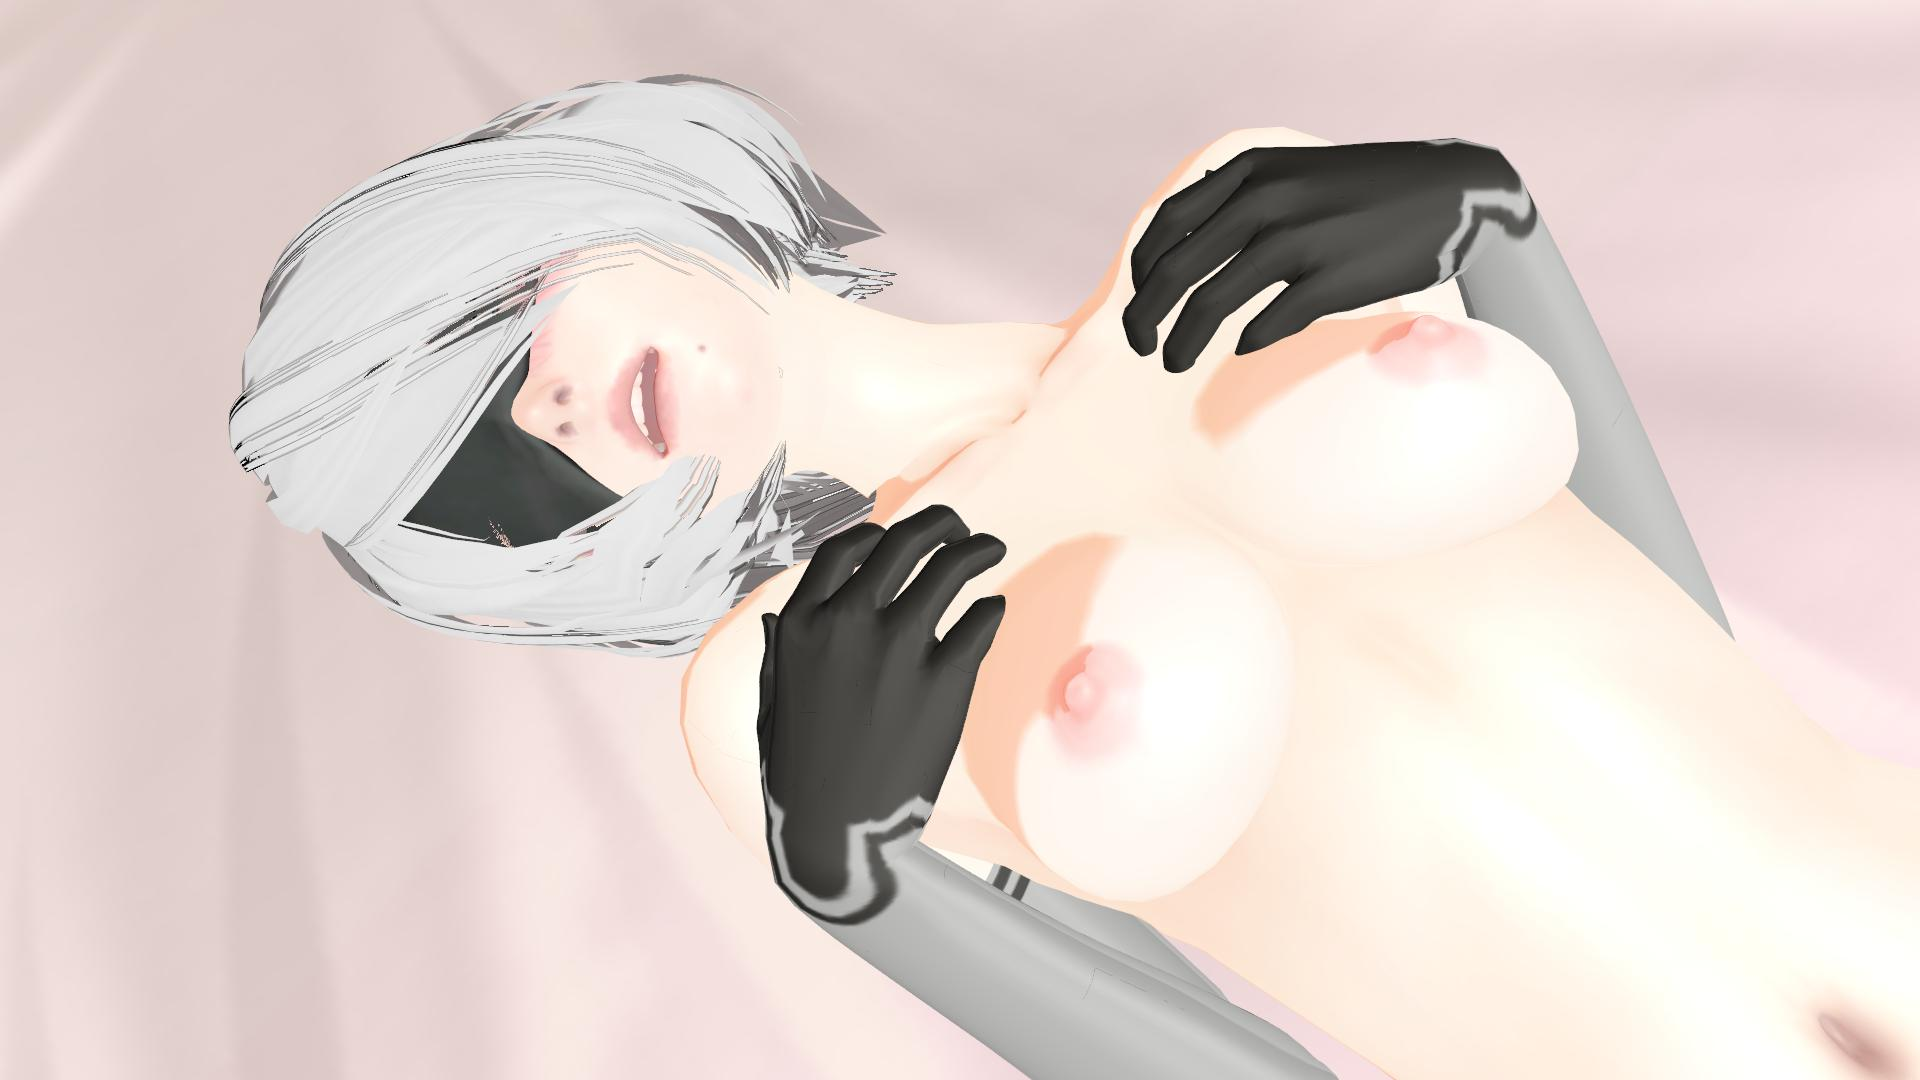 nier automata – 2b pleasure - vr porn video - vrporn